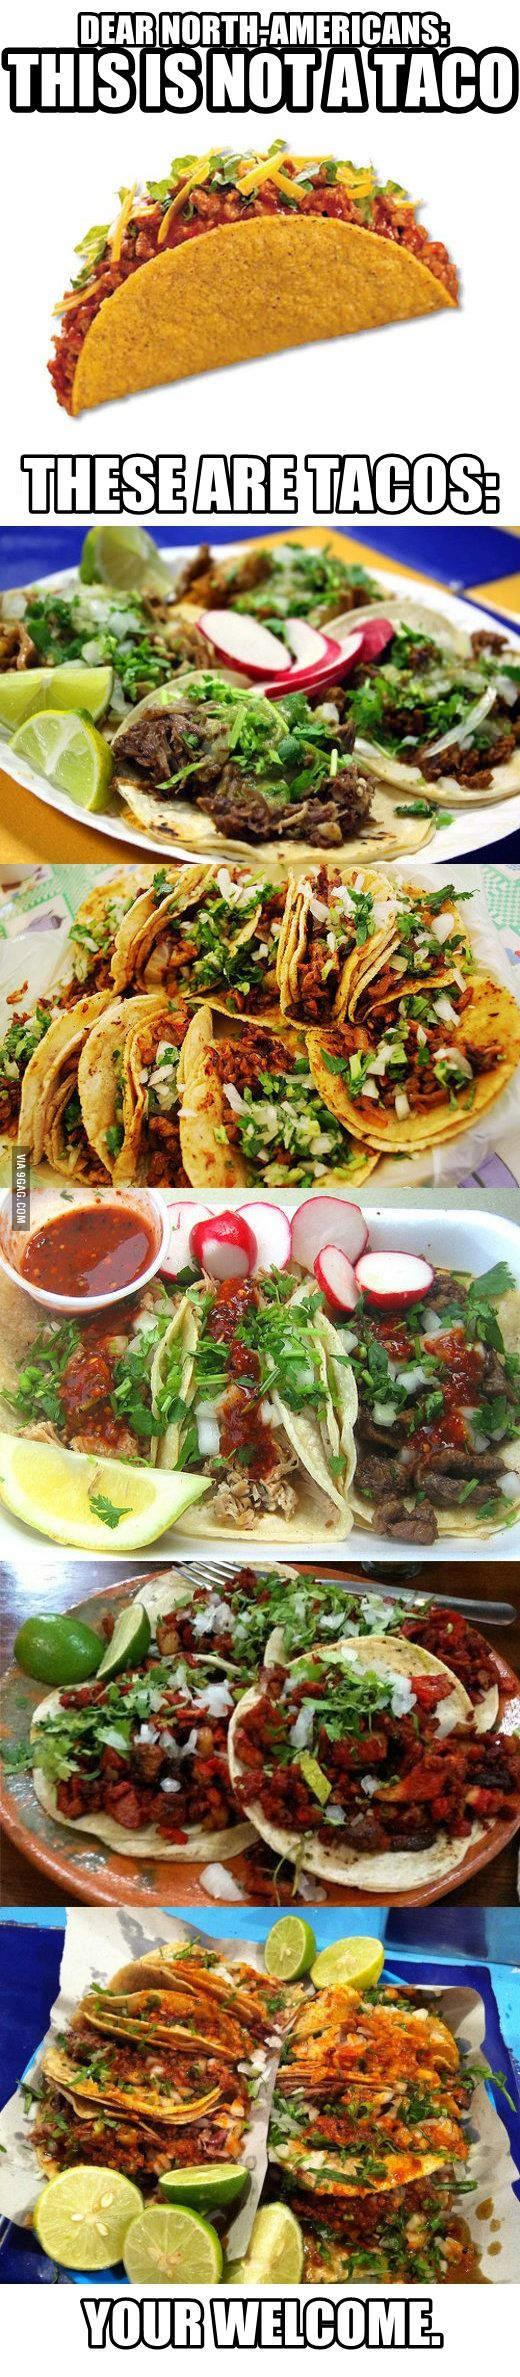 "***You're. But it is still really funny :) At my house, we call the tacos on the very top ""Crappy tacos"""